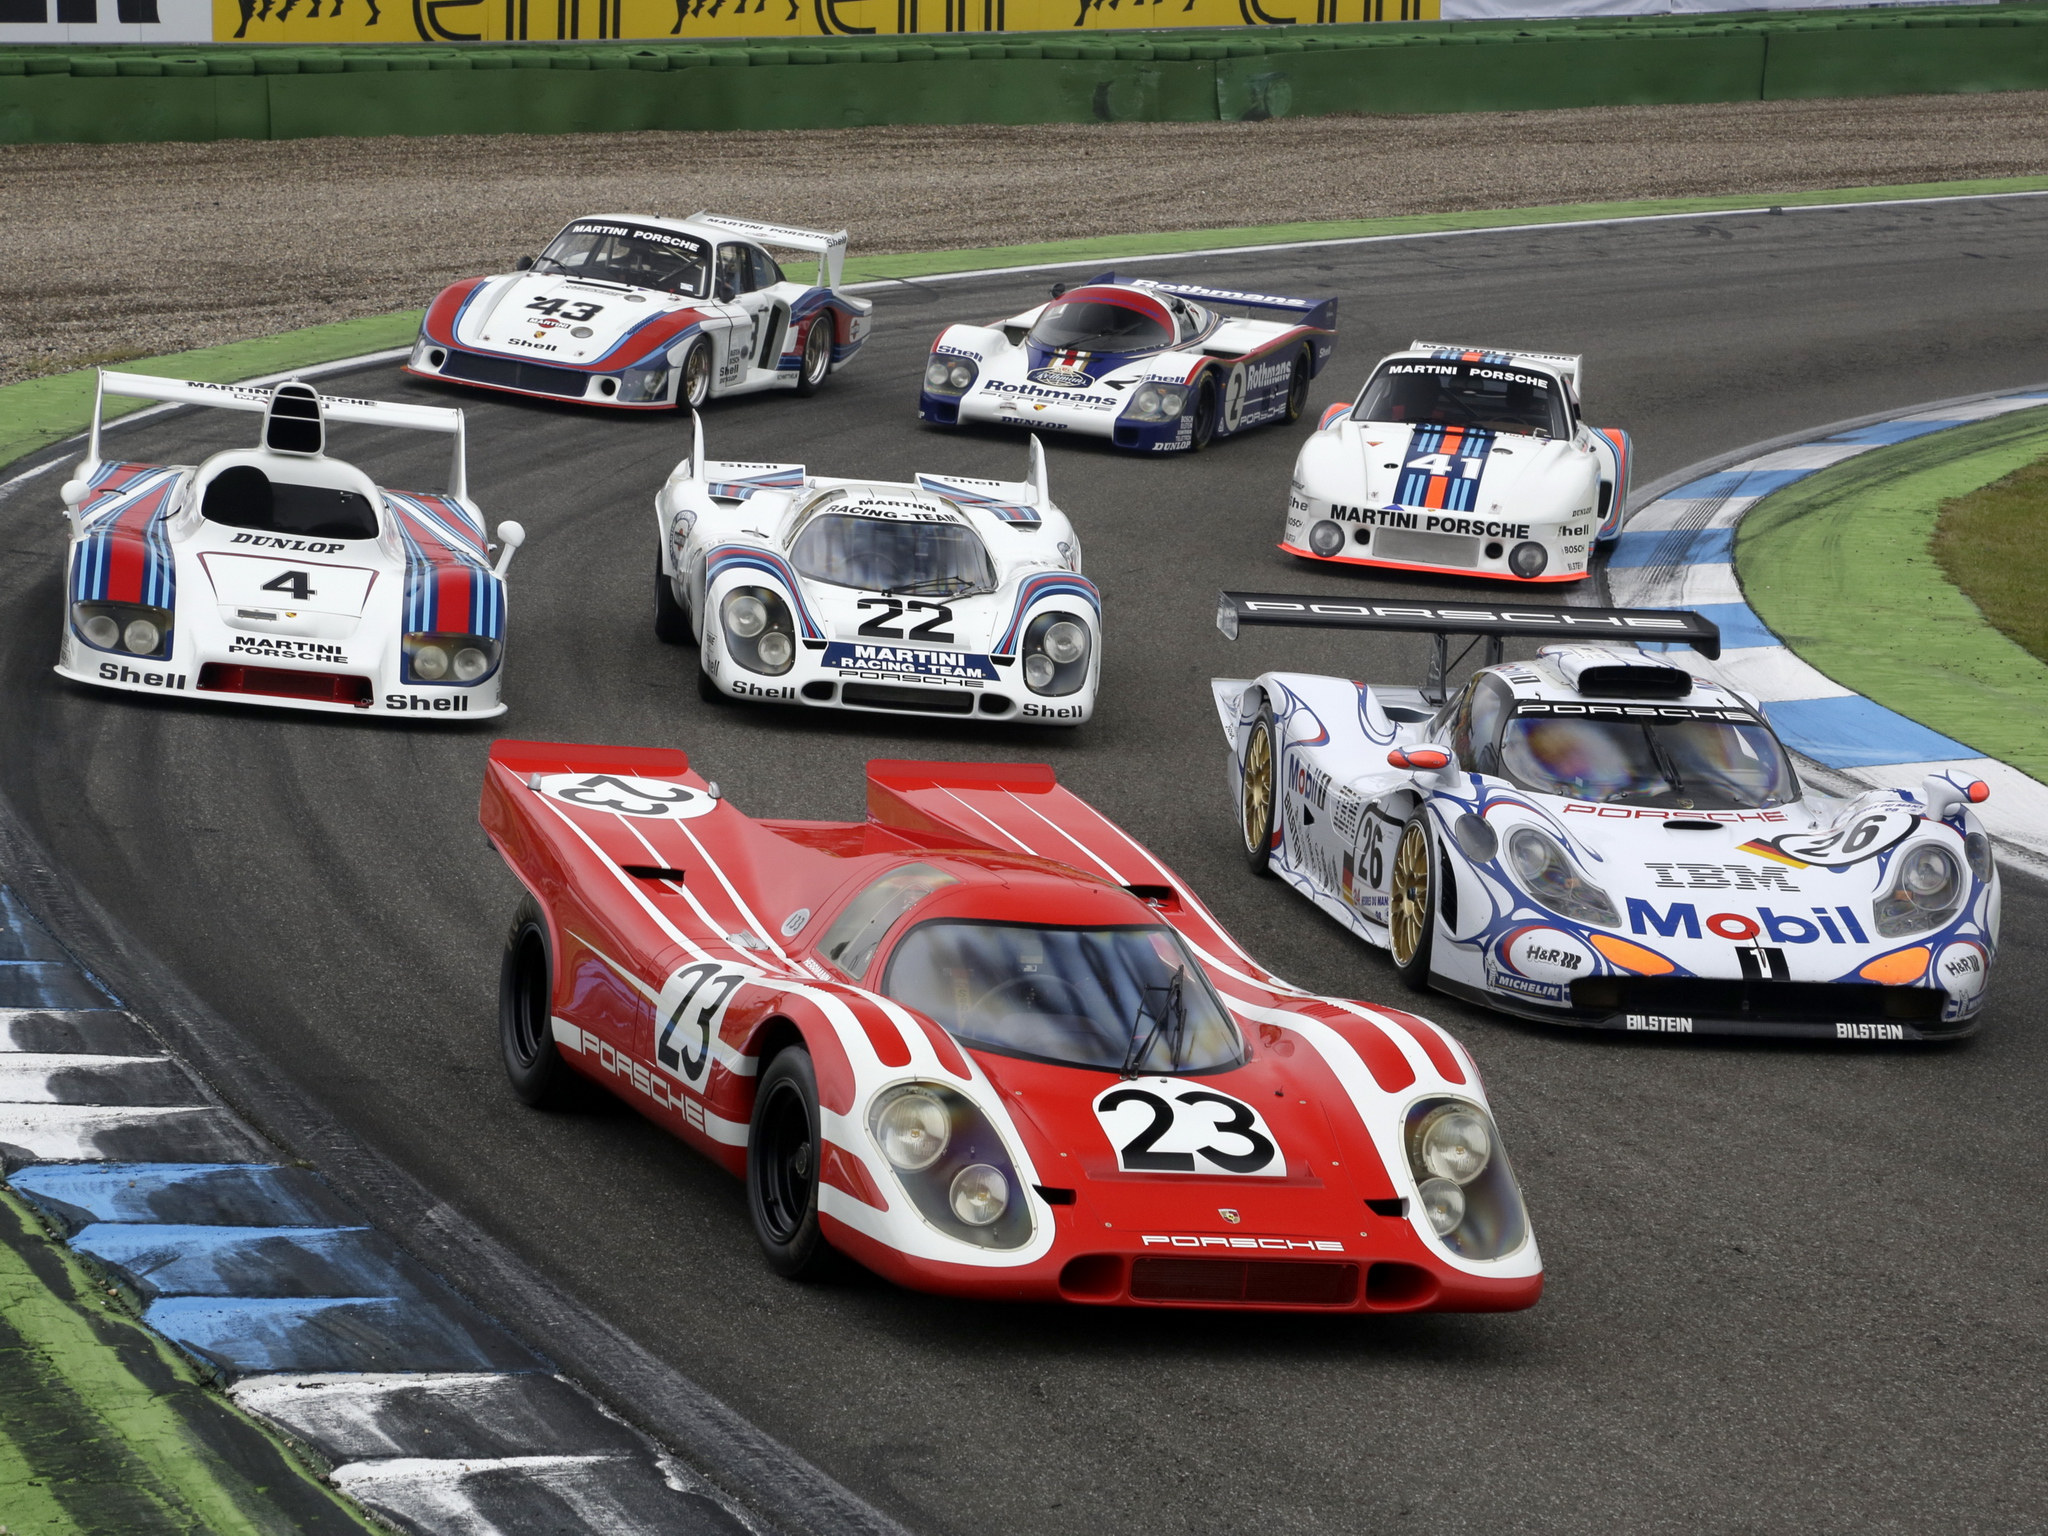 porsche race racing le mans wallpaper 2048x1536 165454 wallpaperup. Black Bedroom Furniture Sets. Home Design Ideas